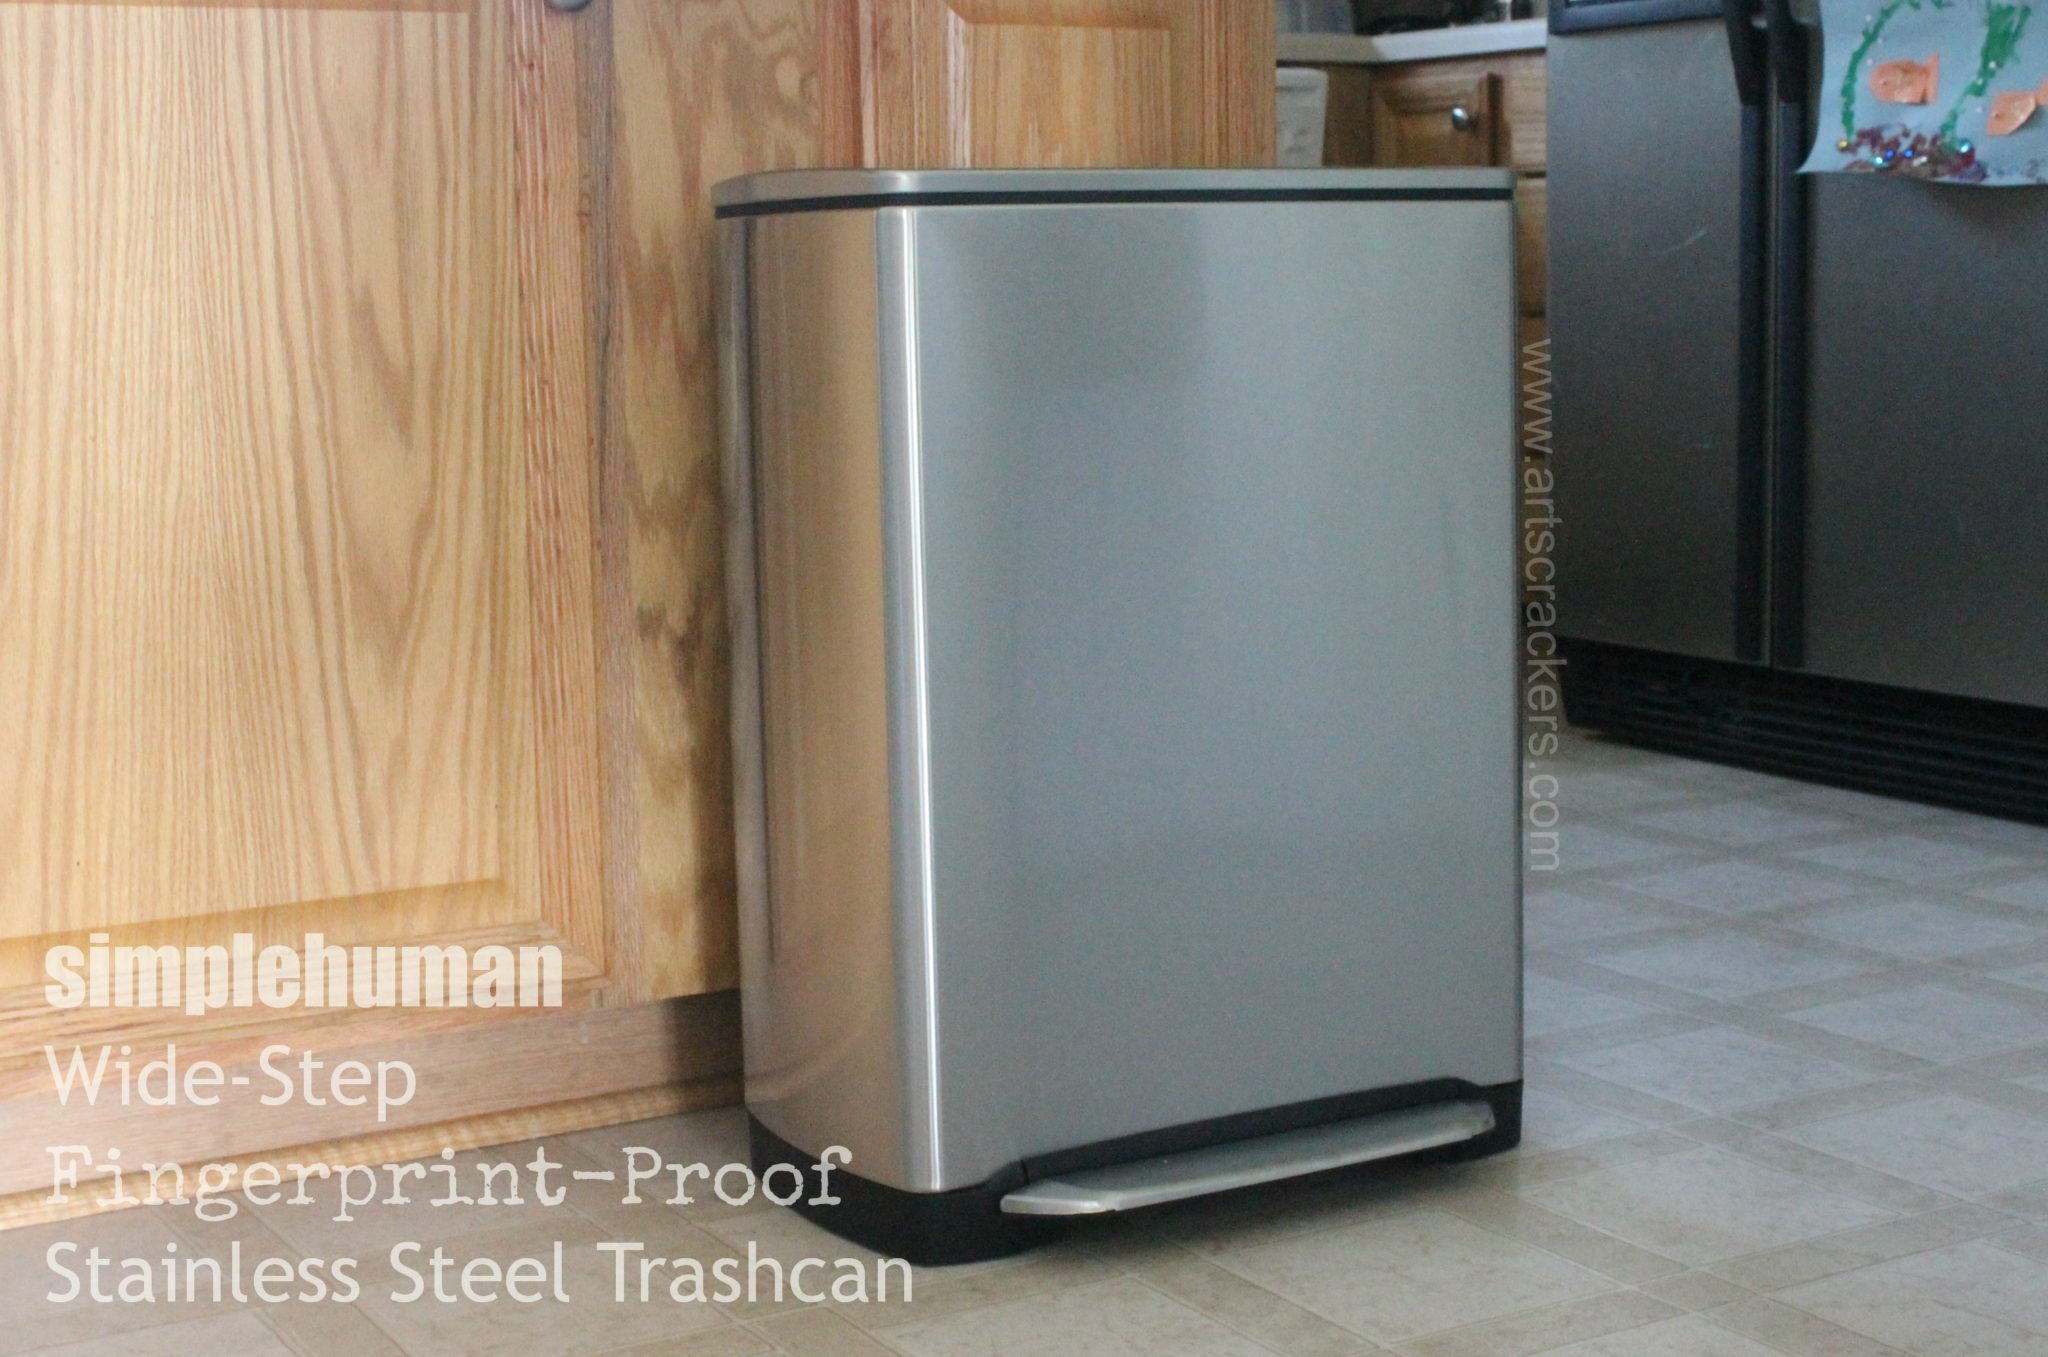 SimpleHuman Wide Step Fingerprint Proof Stainless Steel Trashcan